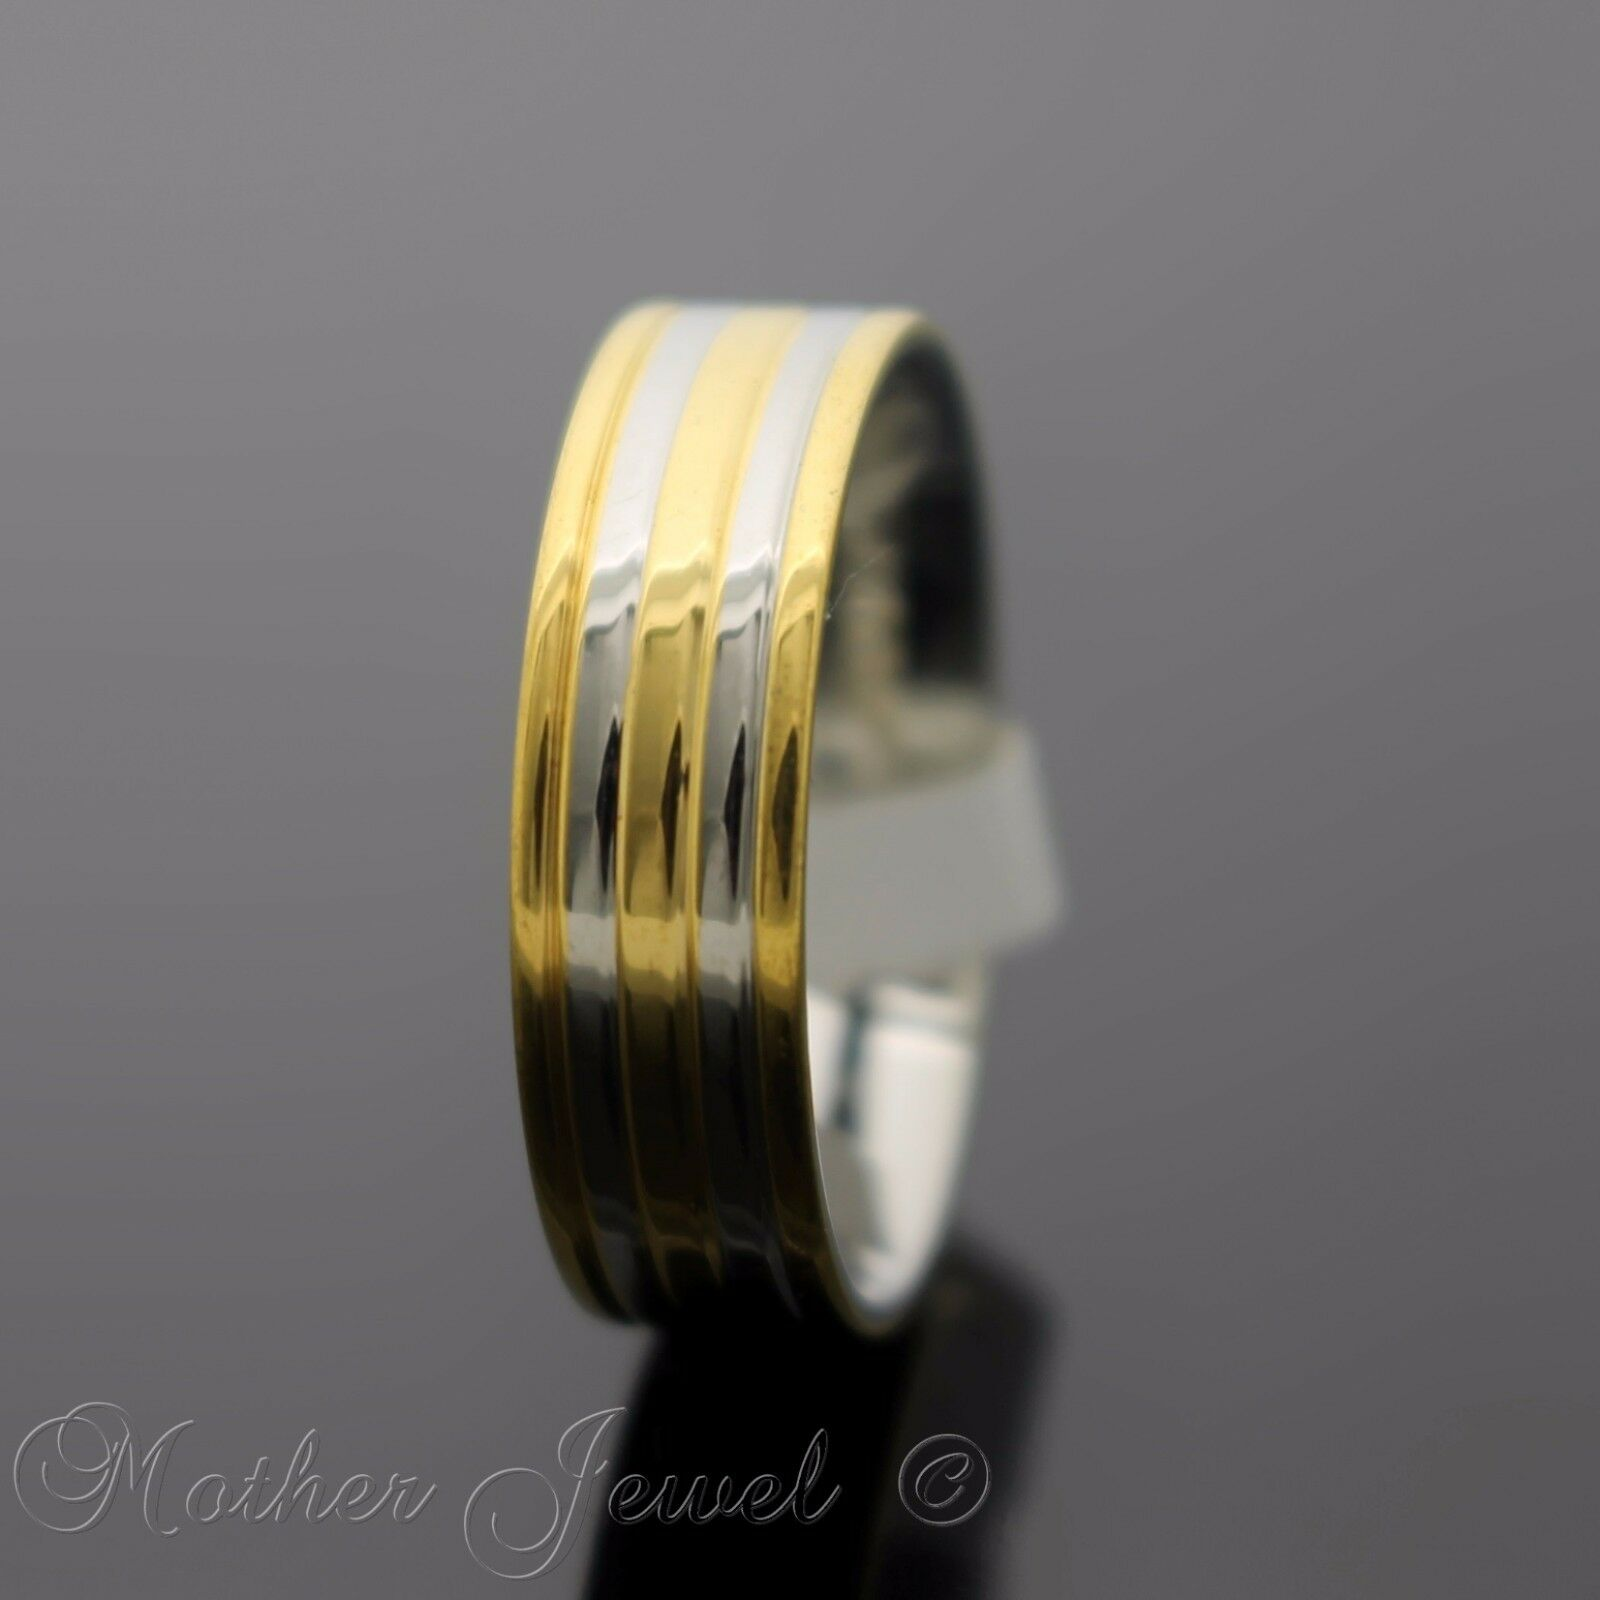 1ad13ac2f 18K YELLOW GOLD PLATED STAINLESS STEEL WEDDING ANNIVERSARY BAND MENS WOMENS  RING